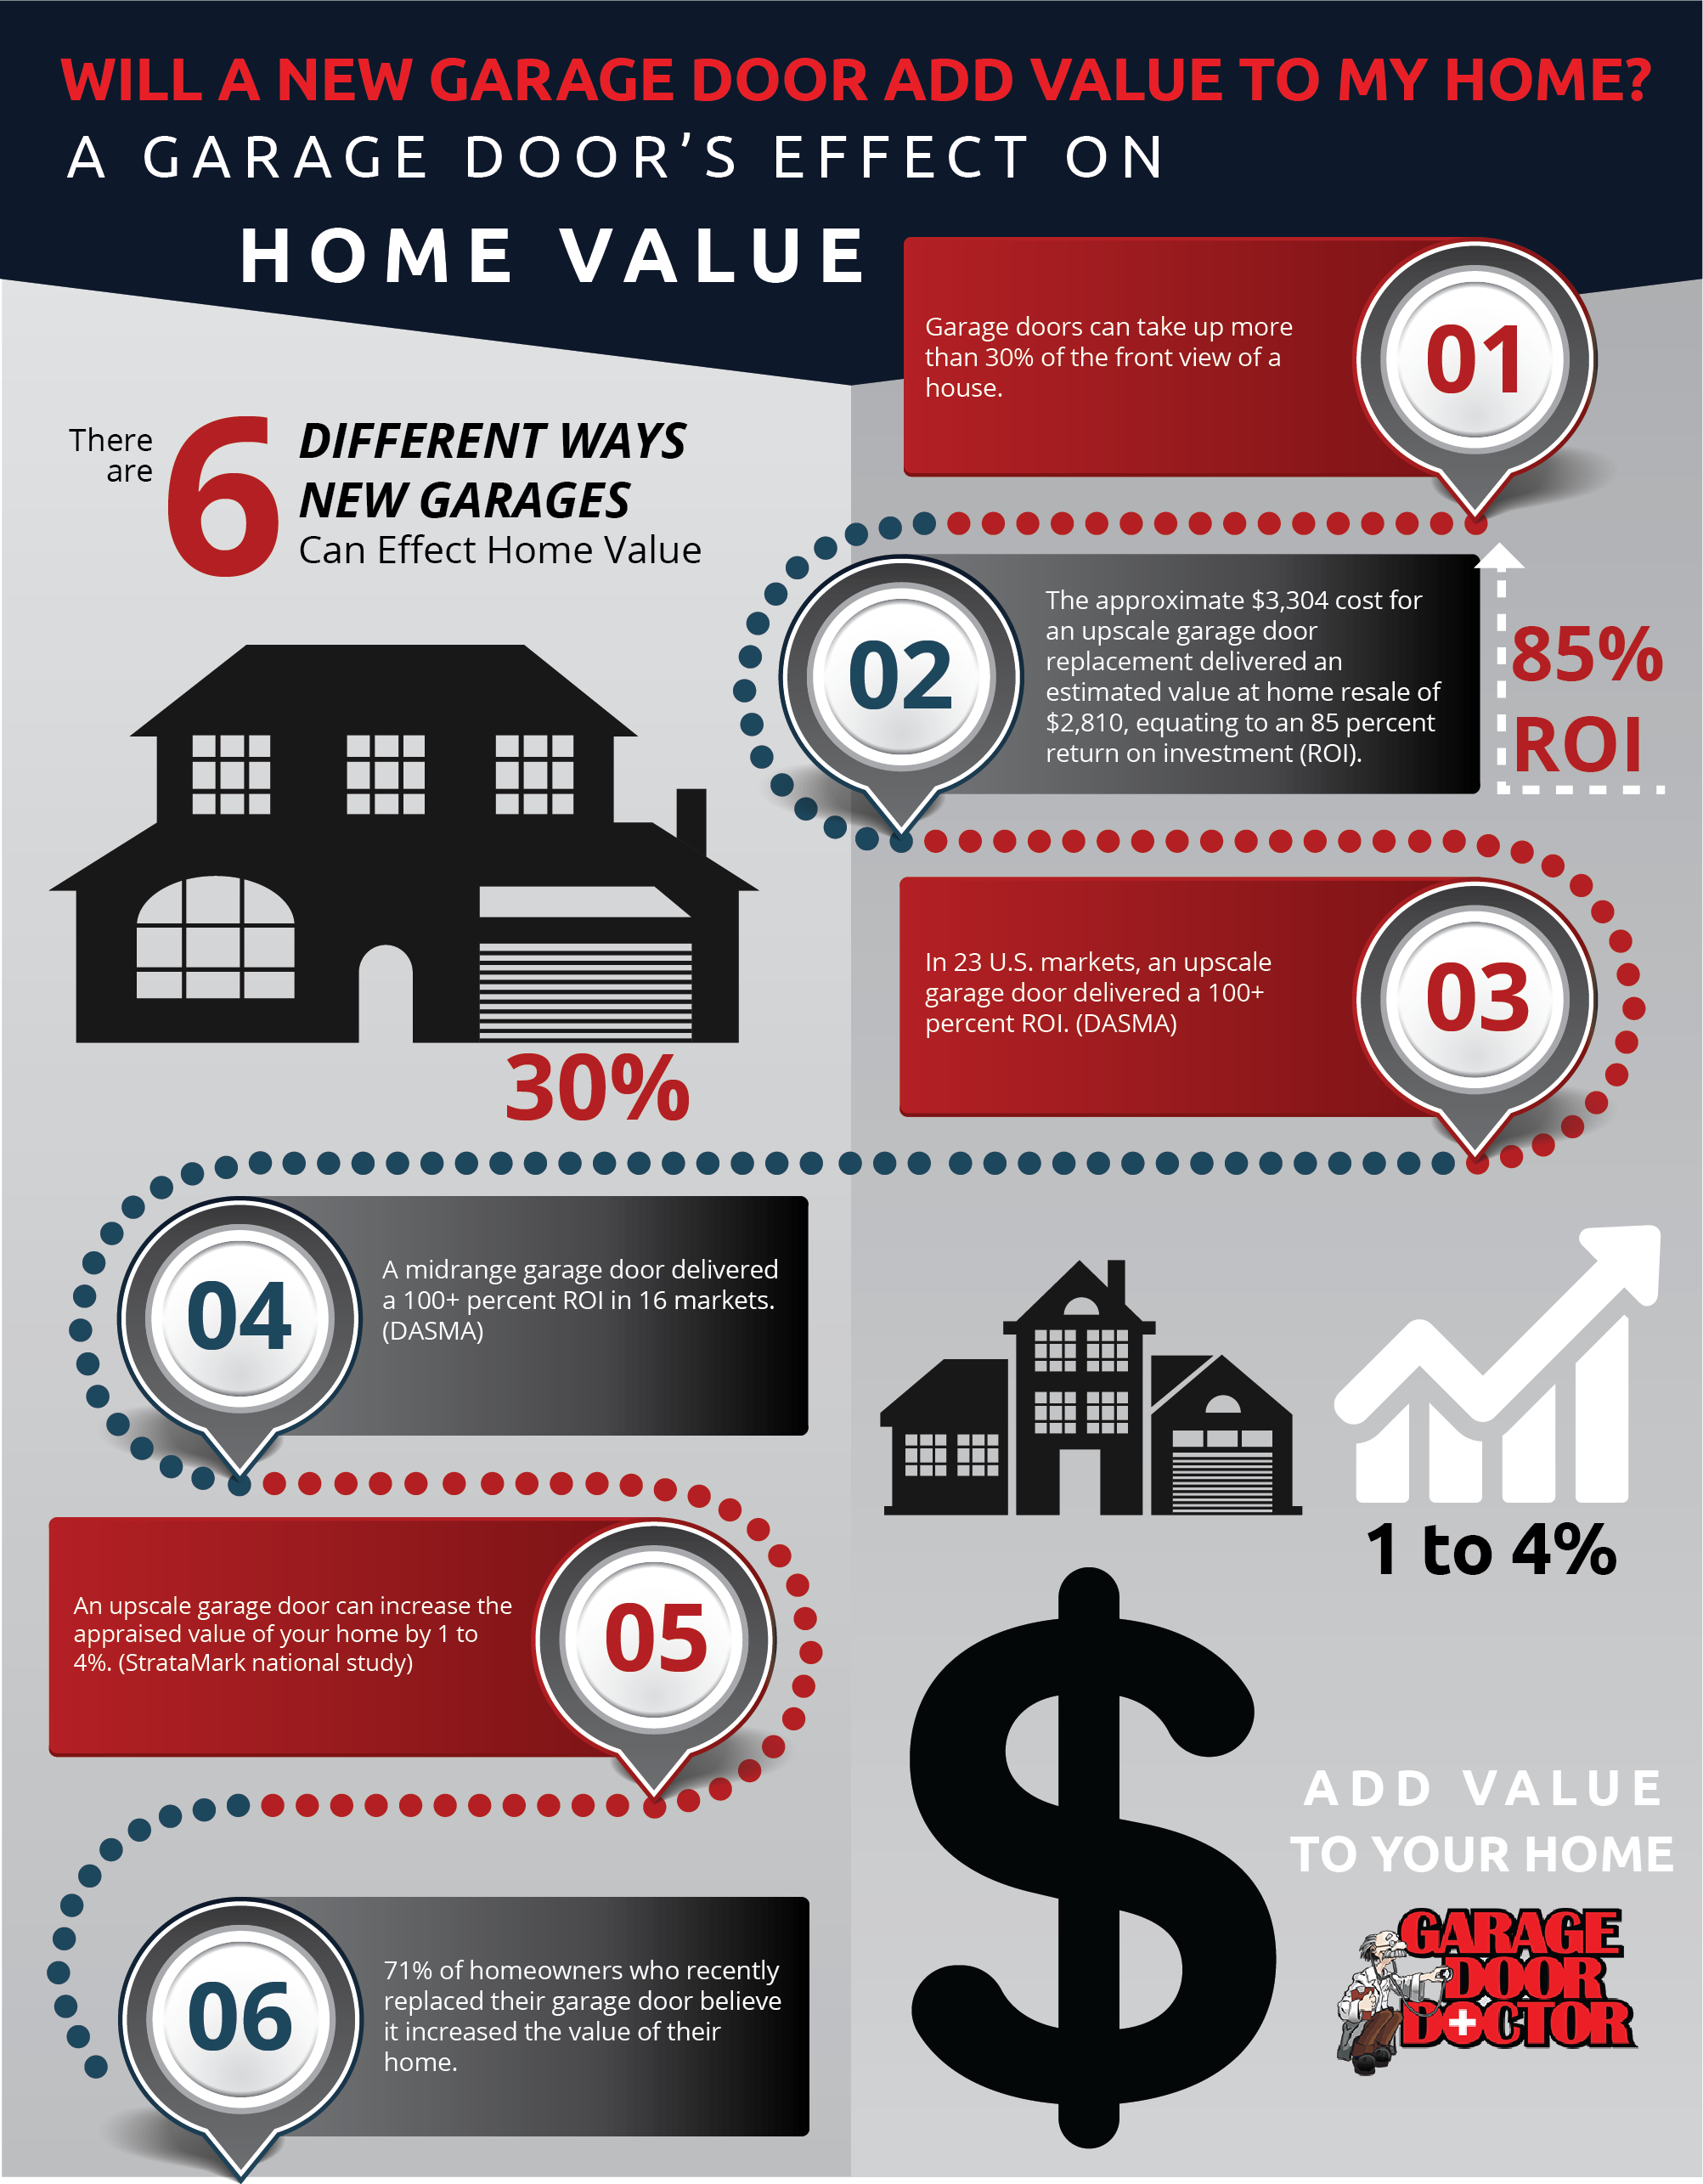 You Will Also Want To Have A Professional Garage Door Repair Service To  Perform Annual Maintenance To Protect Your Investment. Check Out Some  Statistics On ...